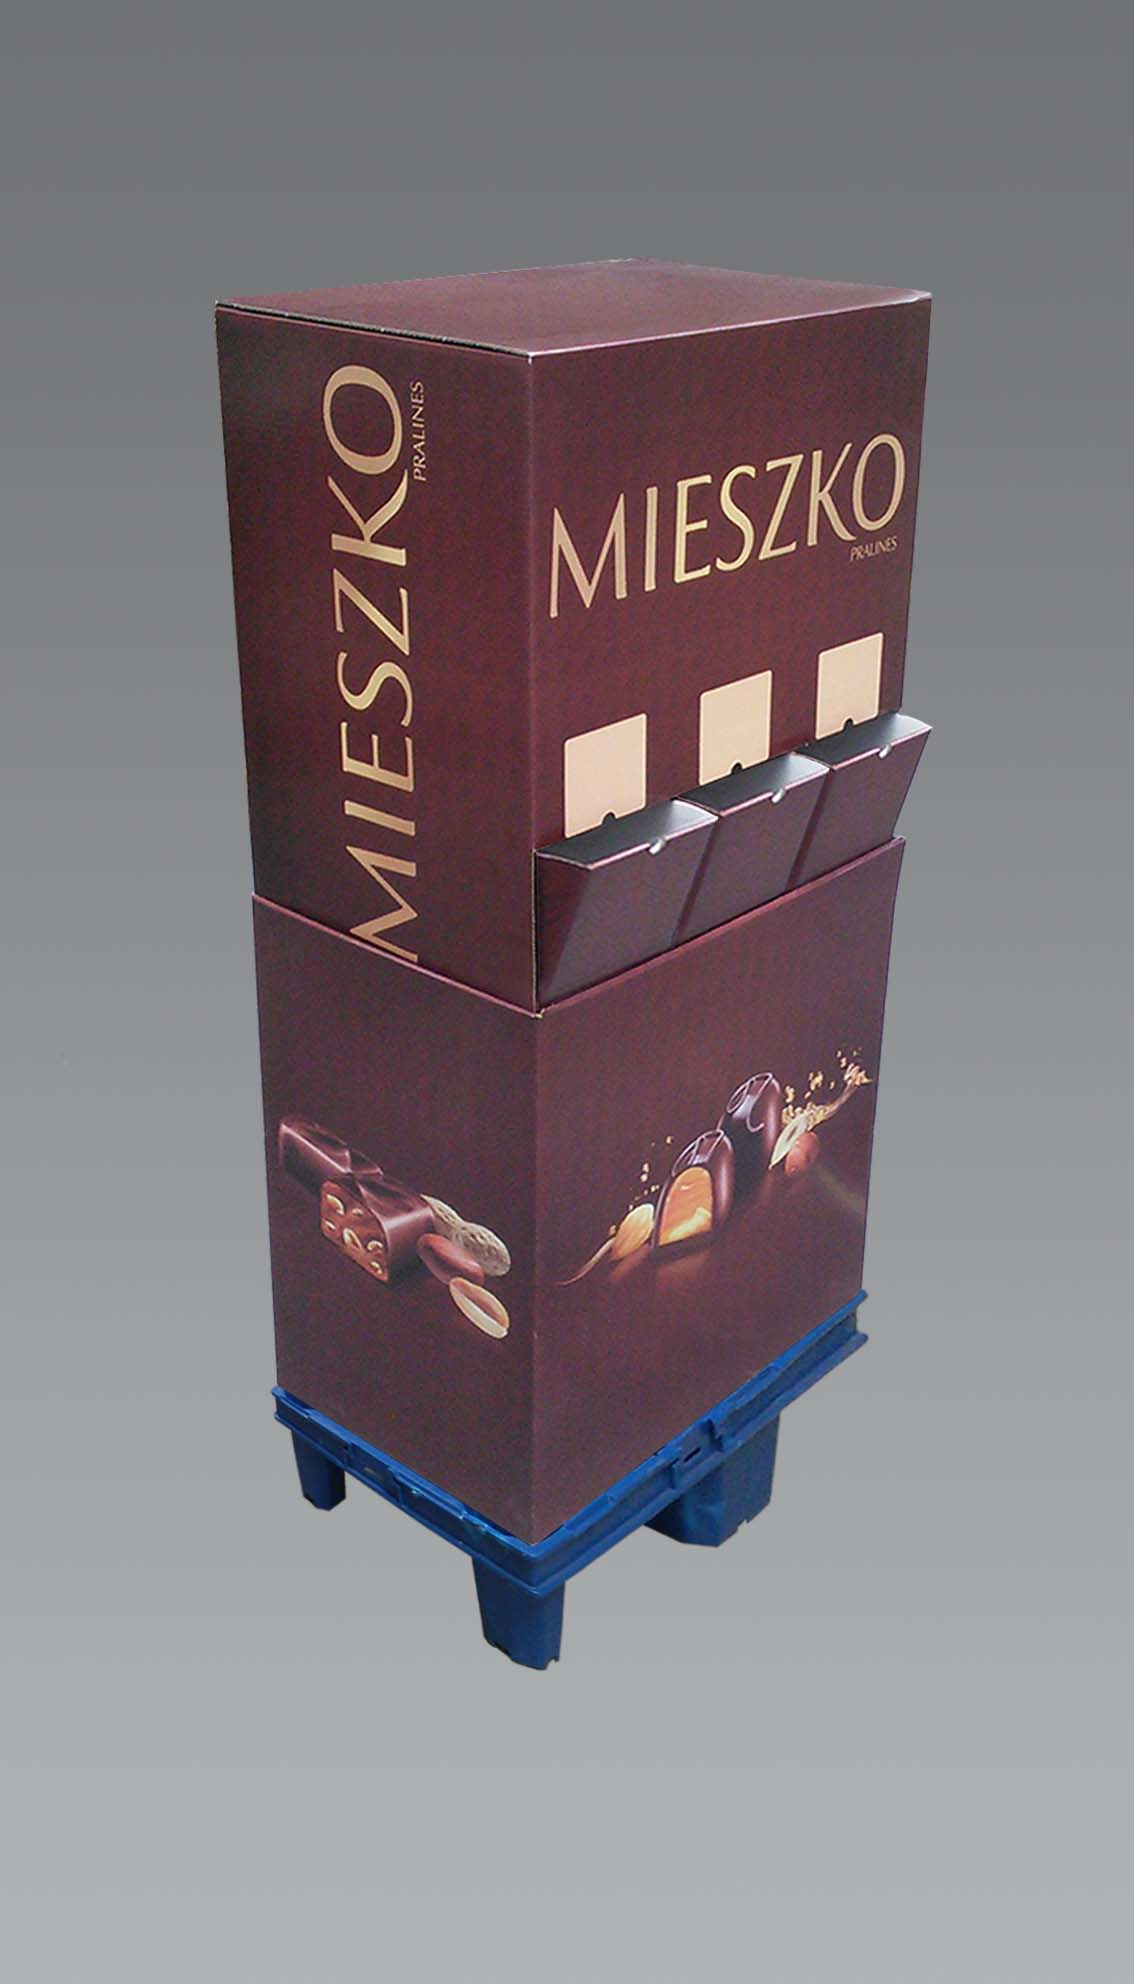 Mieszko Display